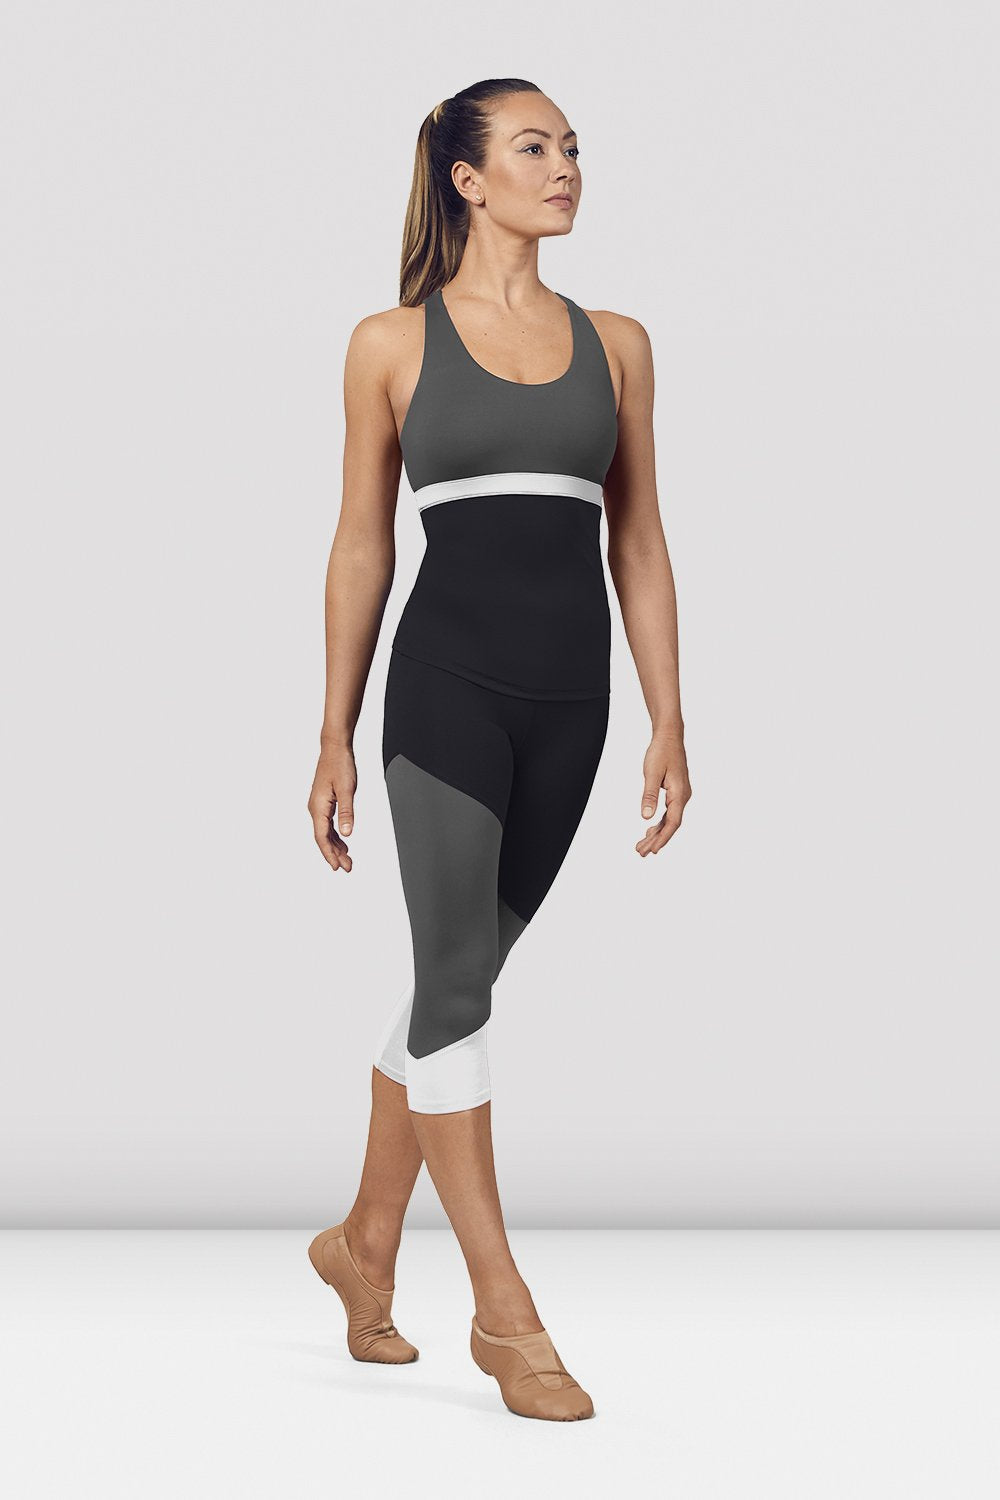 Black Bloch Ladies Scoop Neck Cross Back Tank Top on female model in parallel fourth position on releve facing corner